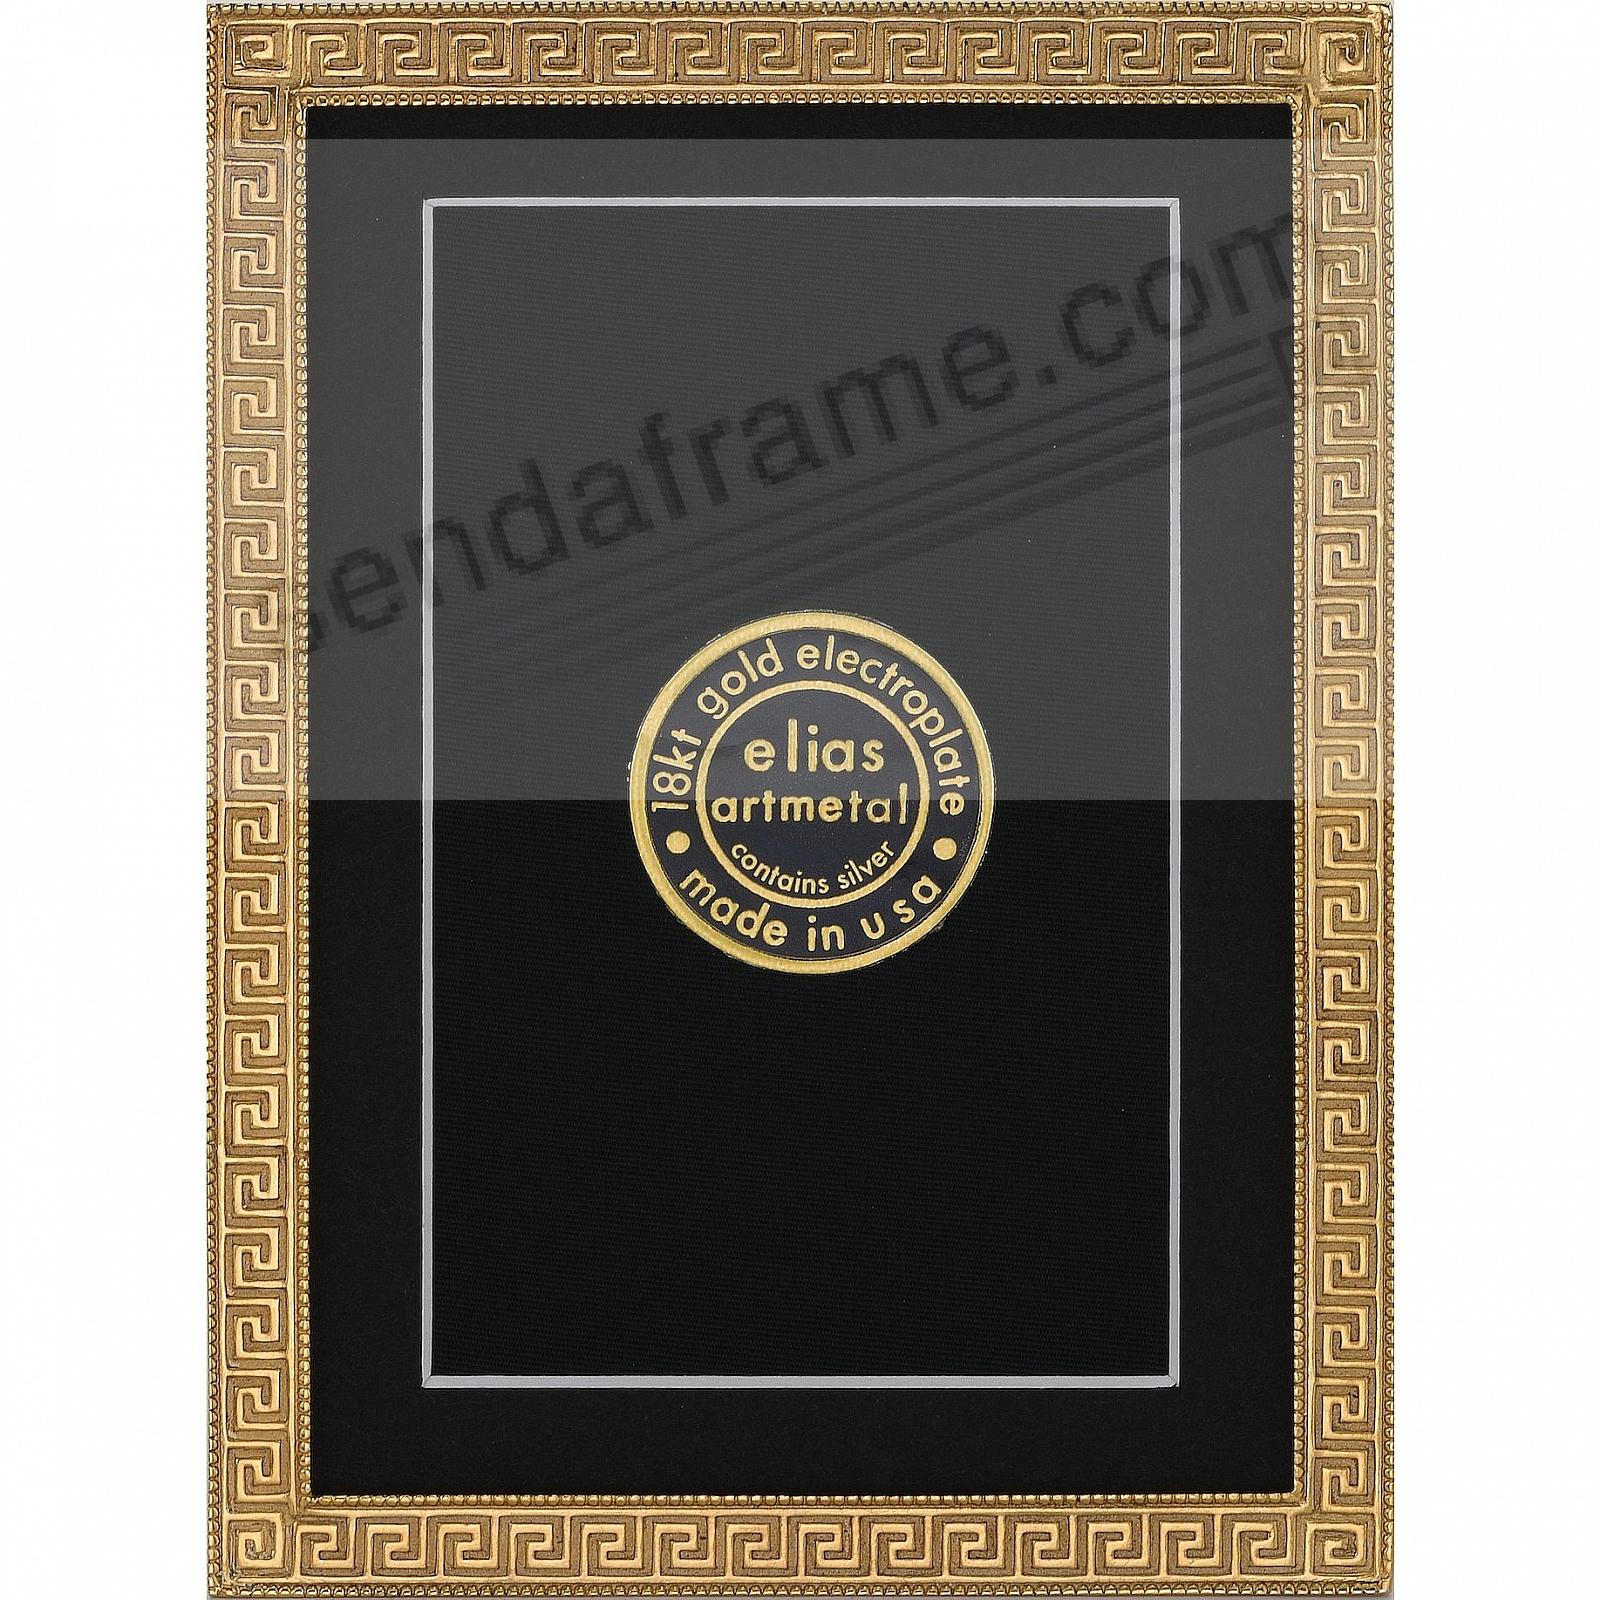 GREEK KEY 18kt Museum Gold over Fine Pewter 3½x5½ frame by Elias Artmetal®